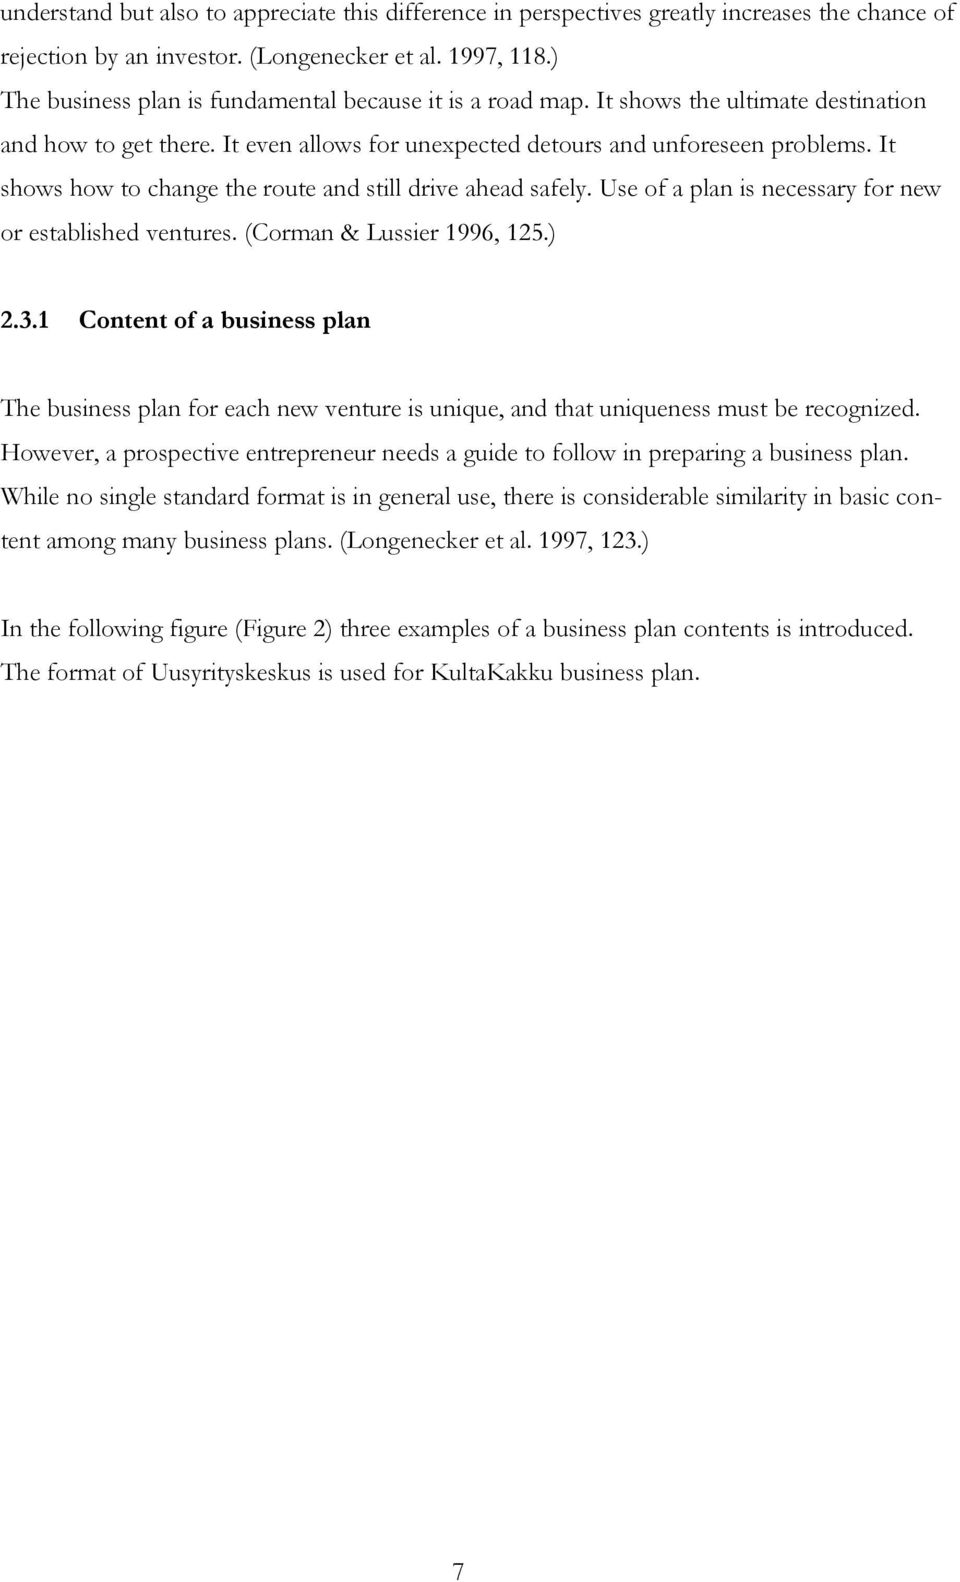 appendix for a business plan for a bakery